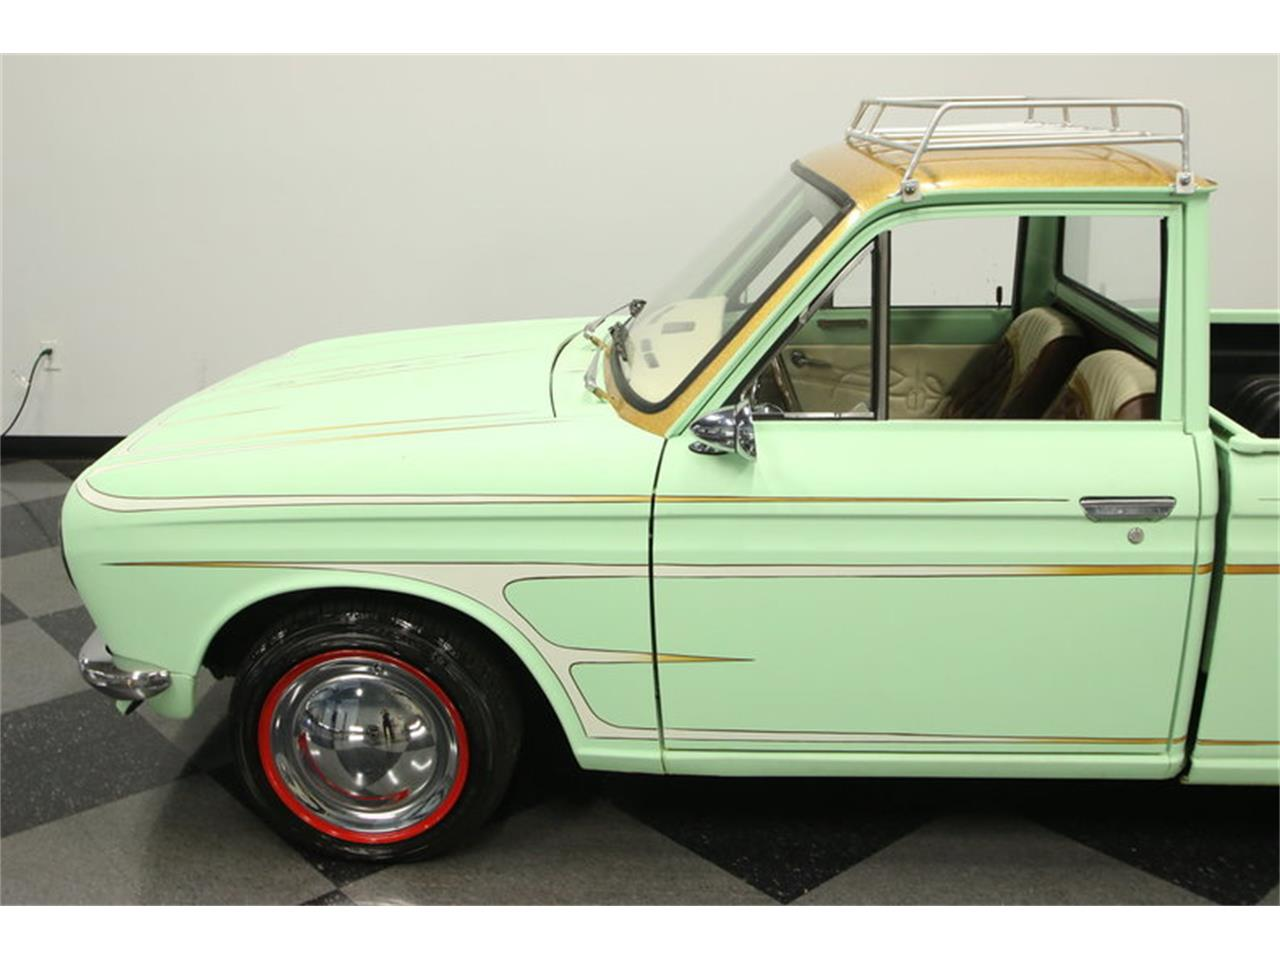 Large Picture of Classic '72 1600 520 Pickup located in Lutz Florida Offered by Streetside Classics - Tampa - MB90